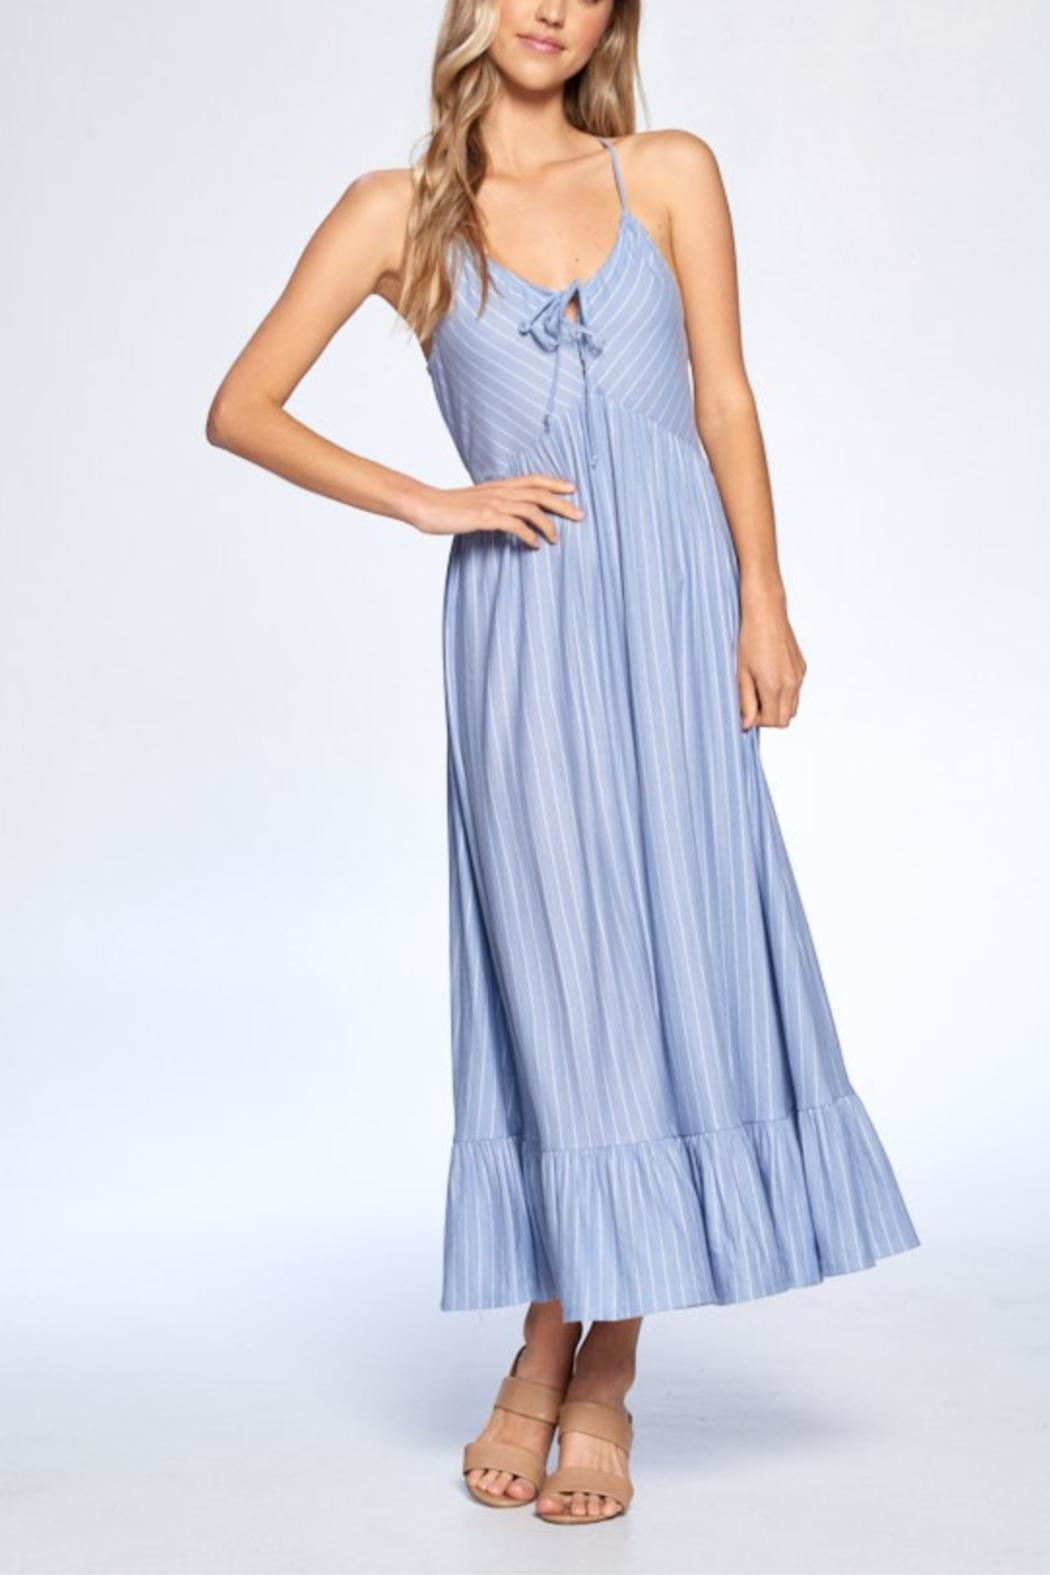 crescent Shannon Striped Dress - Main Image